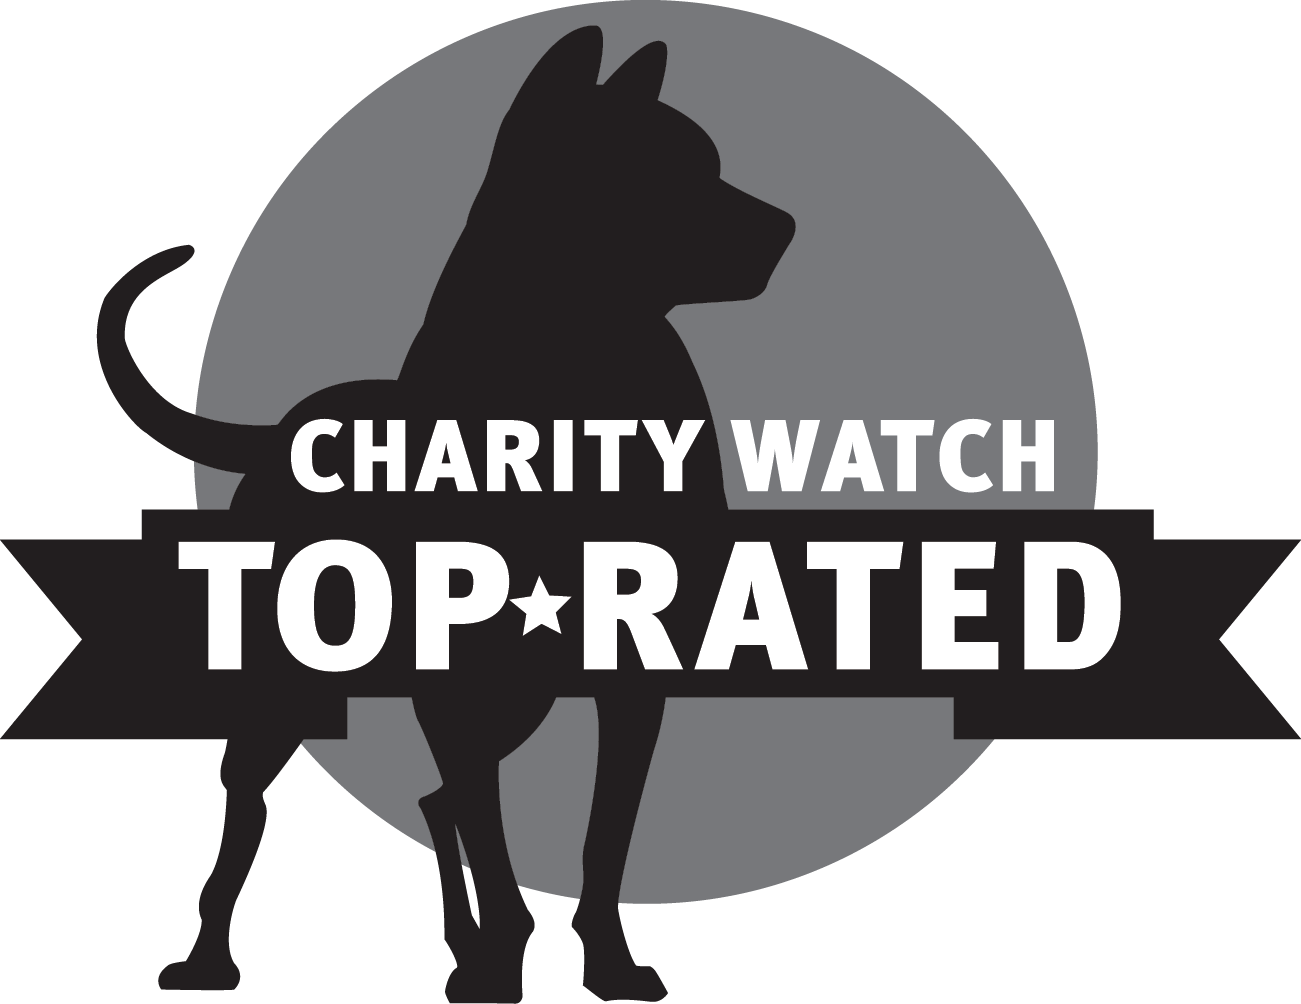 Charity Watch Top Rated logo